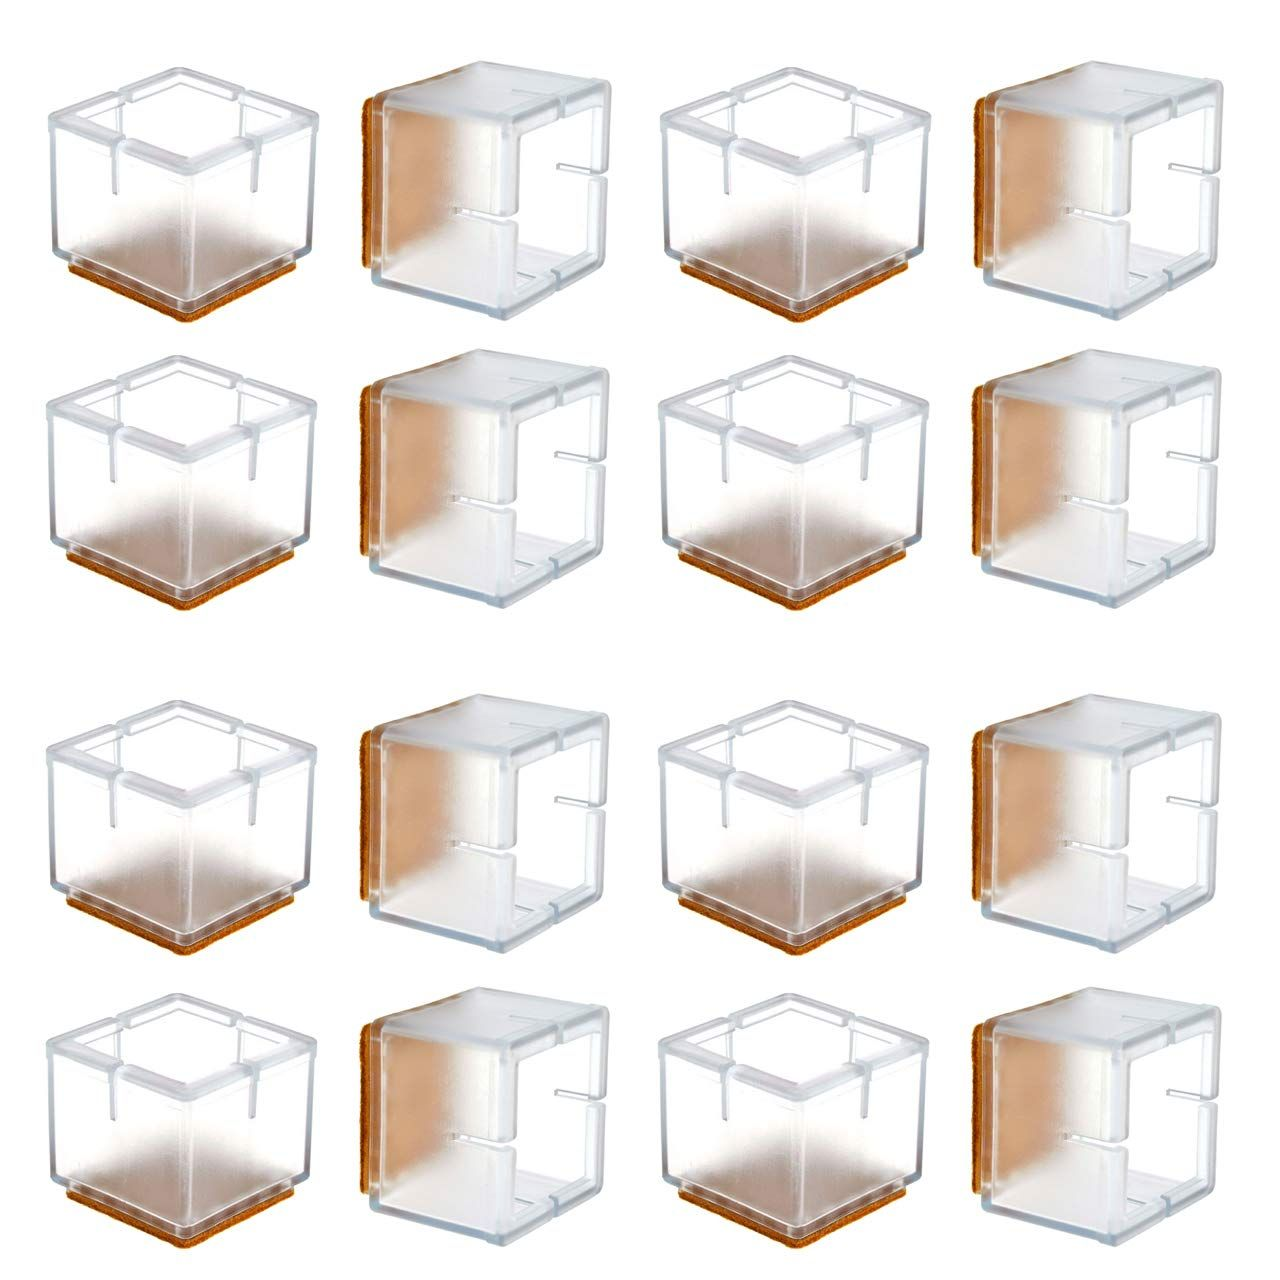 Chair Leg Floor Protectors Warmhut 16pcs Transparent Clear Silicone Table Furniture Leg Feet T Furniture Legs Scratched Wood Floors Chair Leg Floor Protectors